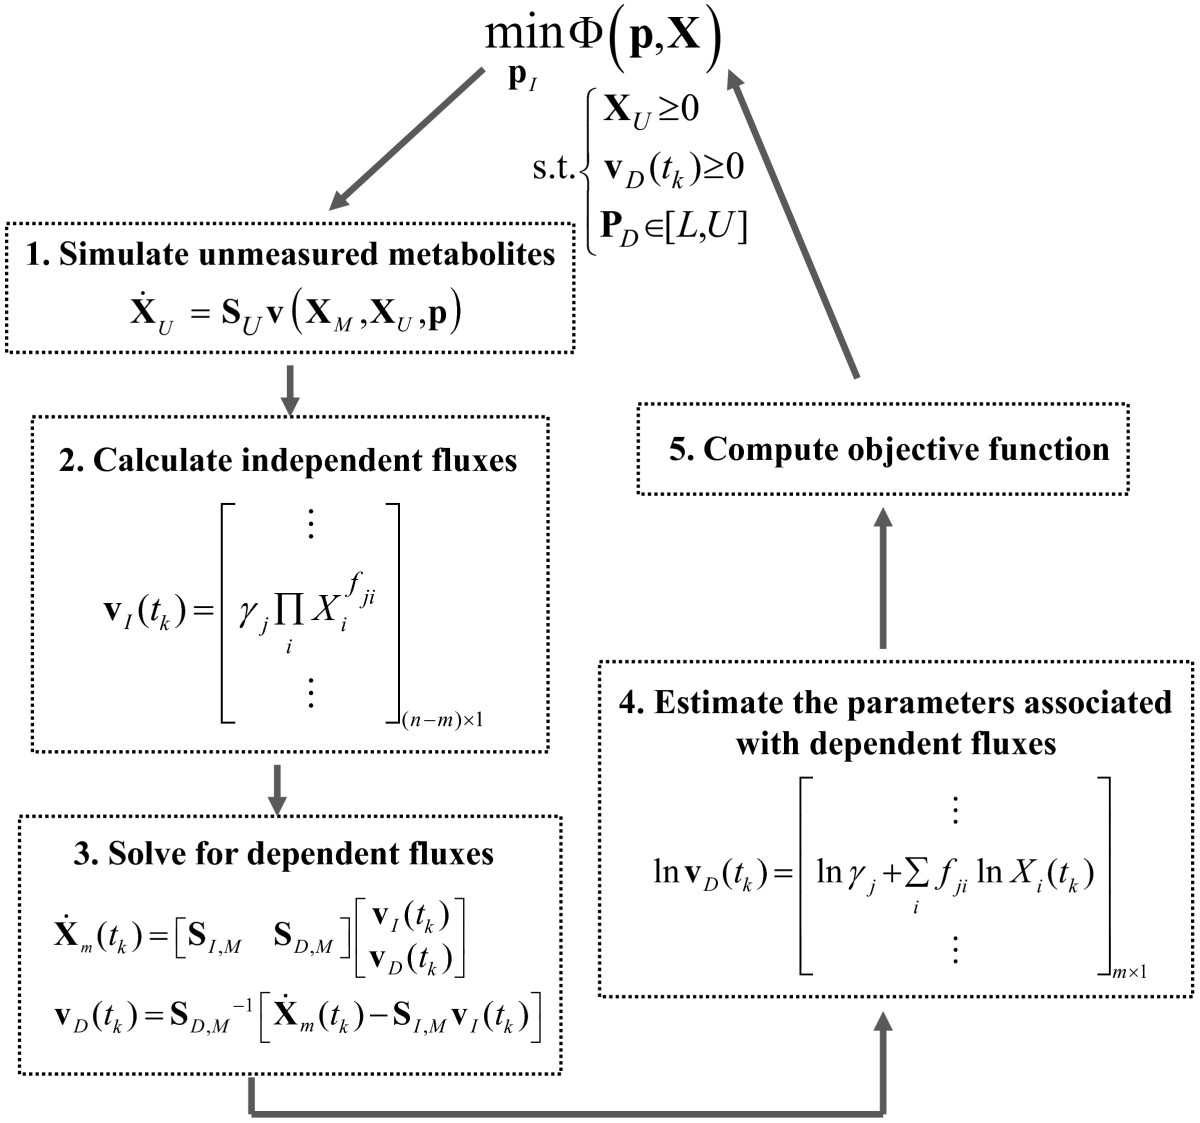 https://static-content.springer.com/image/art%3A10.1186%2F1752-0509-6-142/MediaObjects/12918_2012_Article_1041_Fig2_HTML.jpg